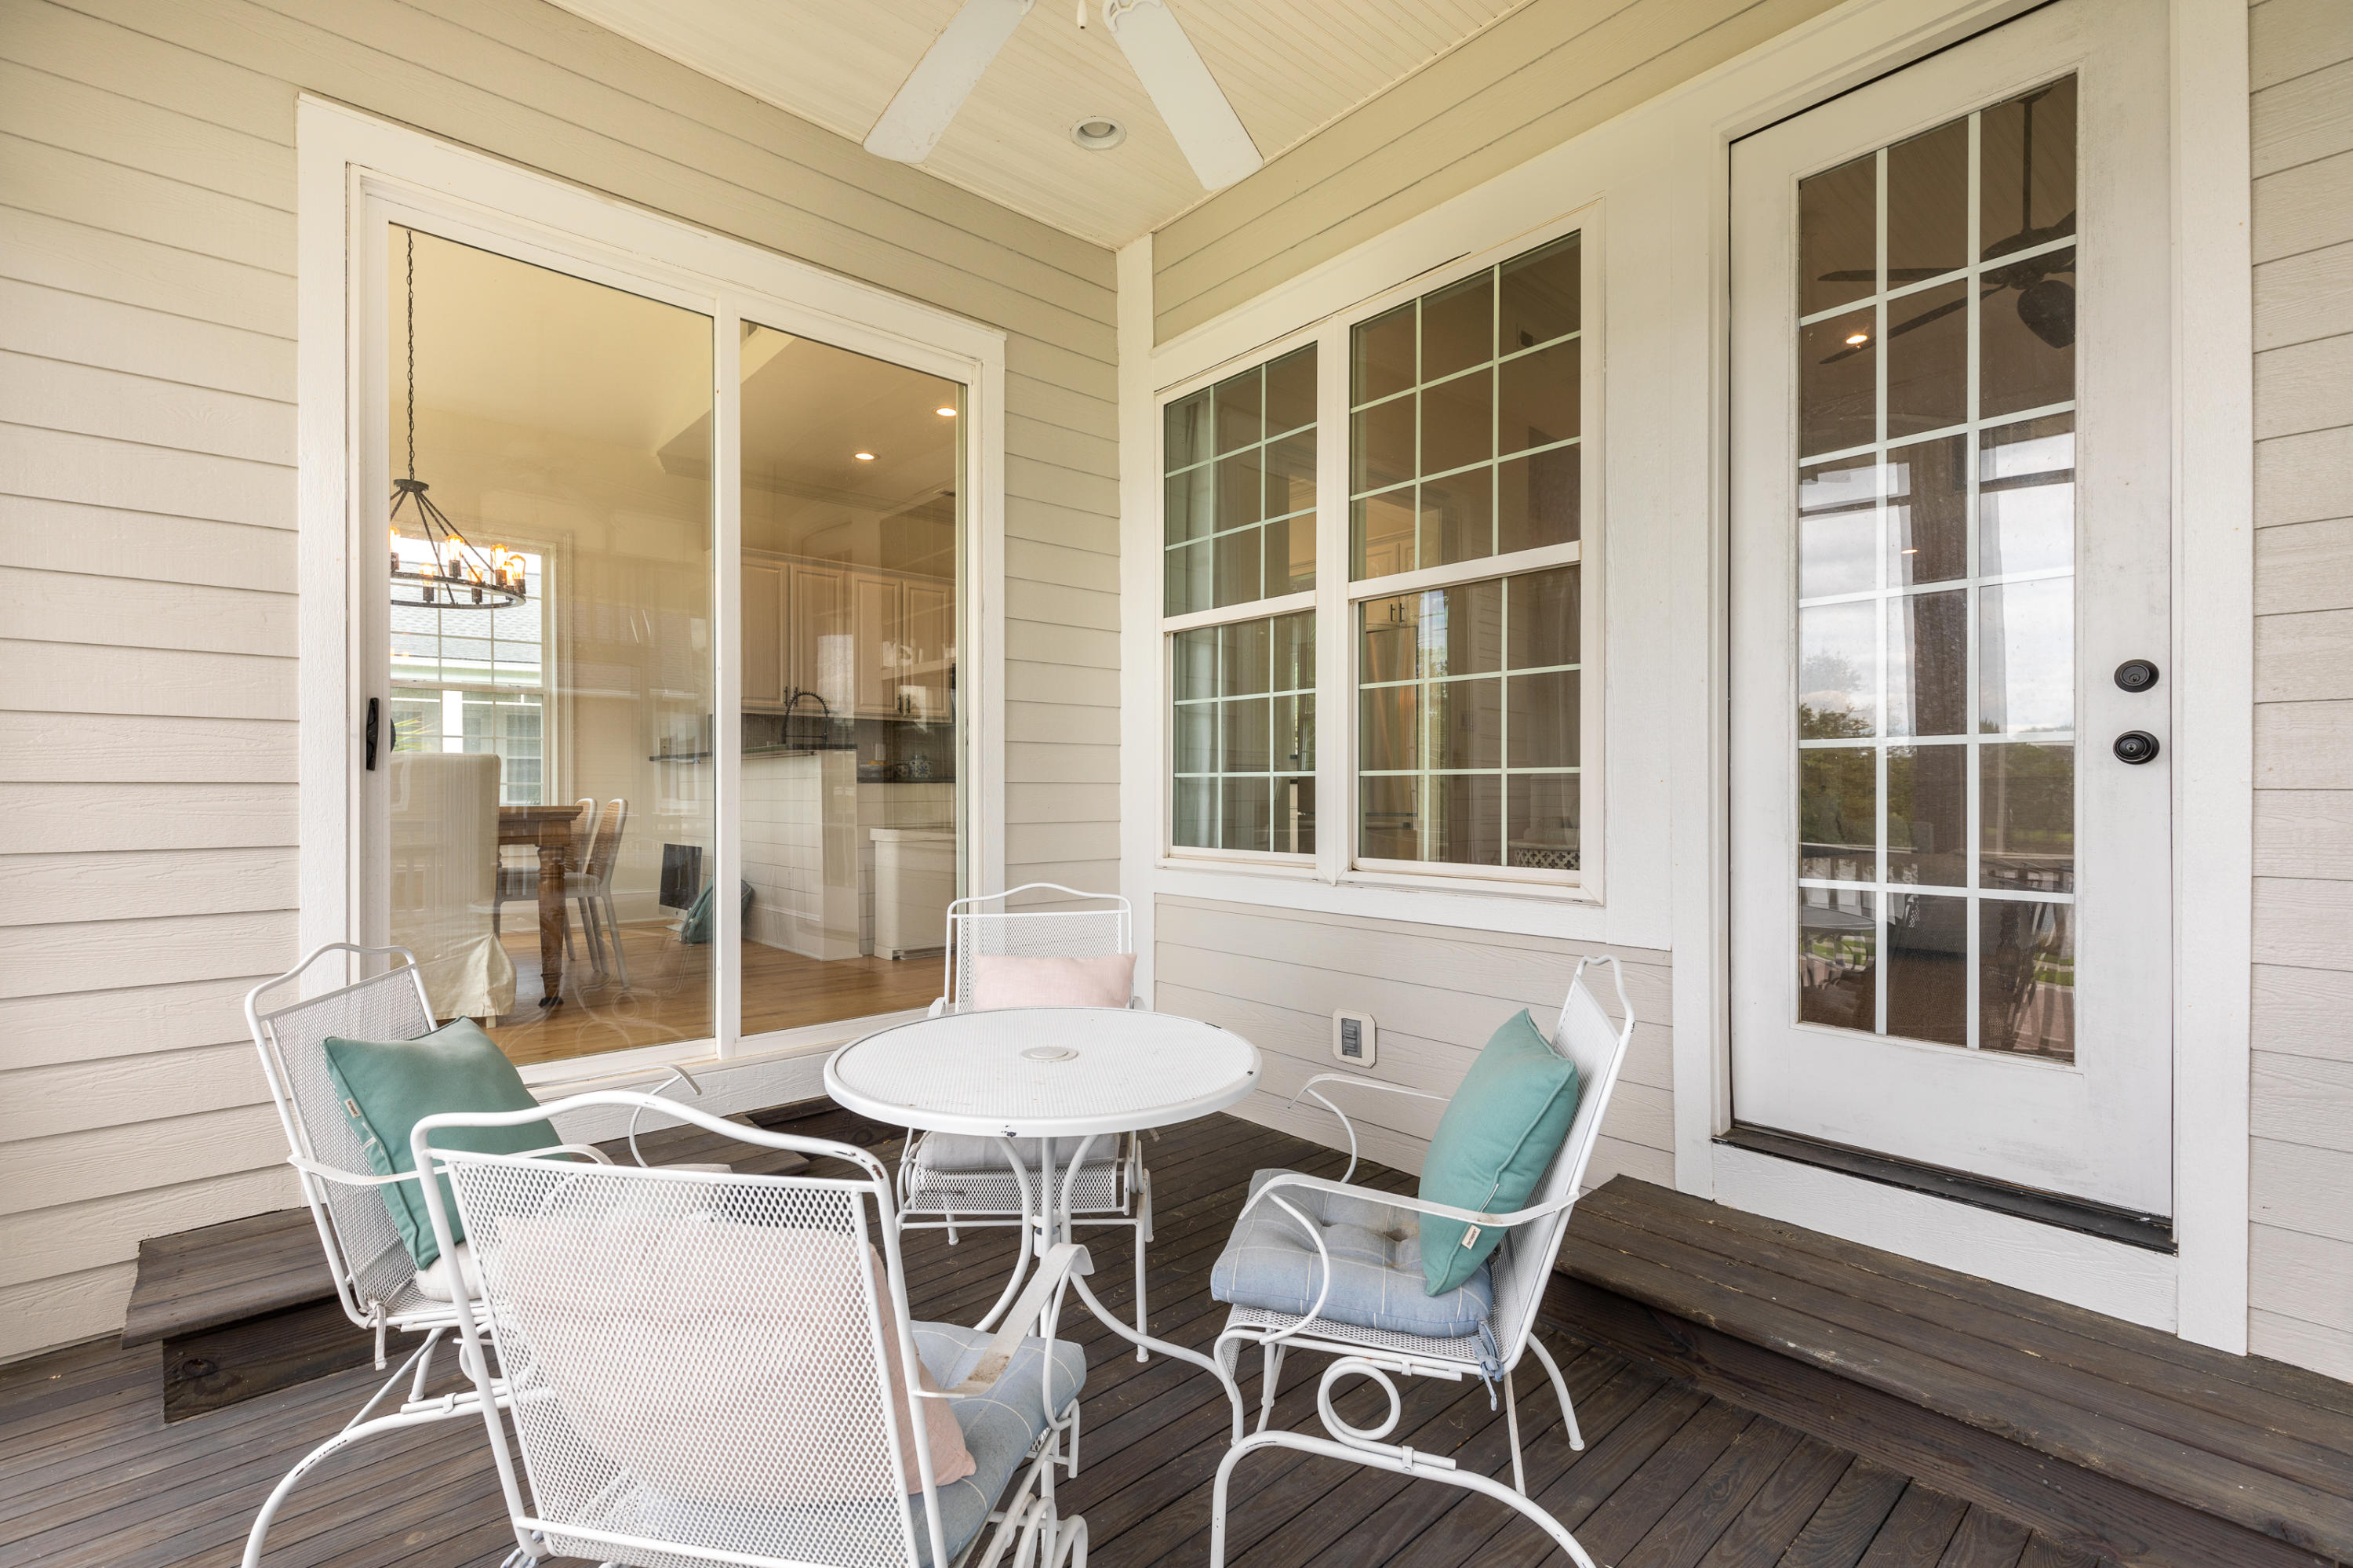 Rivertowne Country Club Homes For Sale - 1725 Rivertowne Country Club, Mount Pleasant, SC - 10